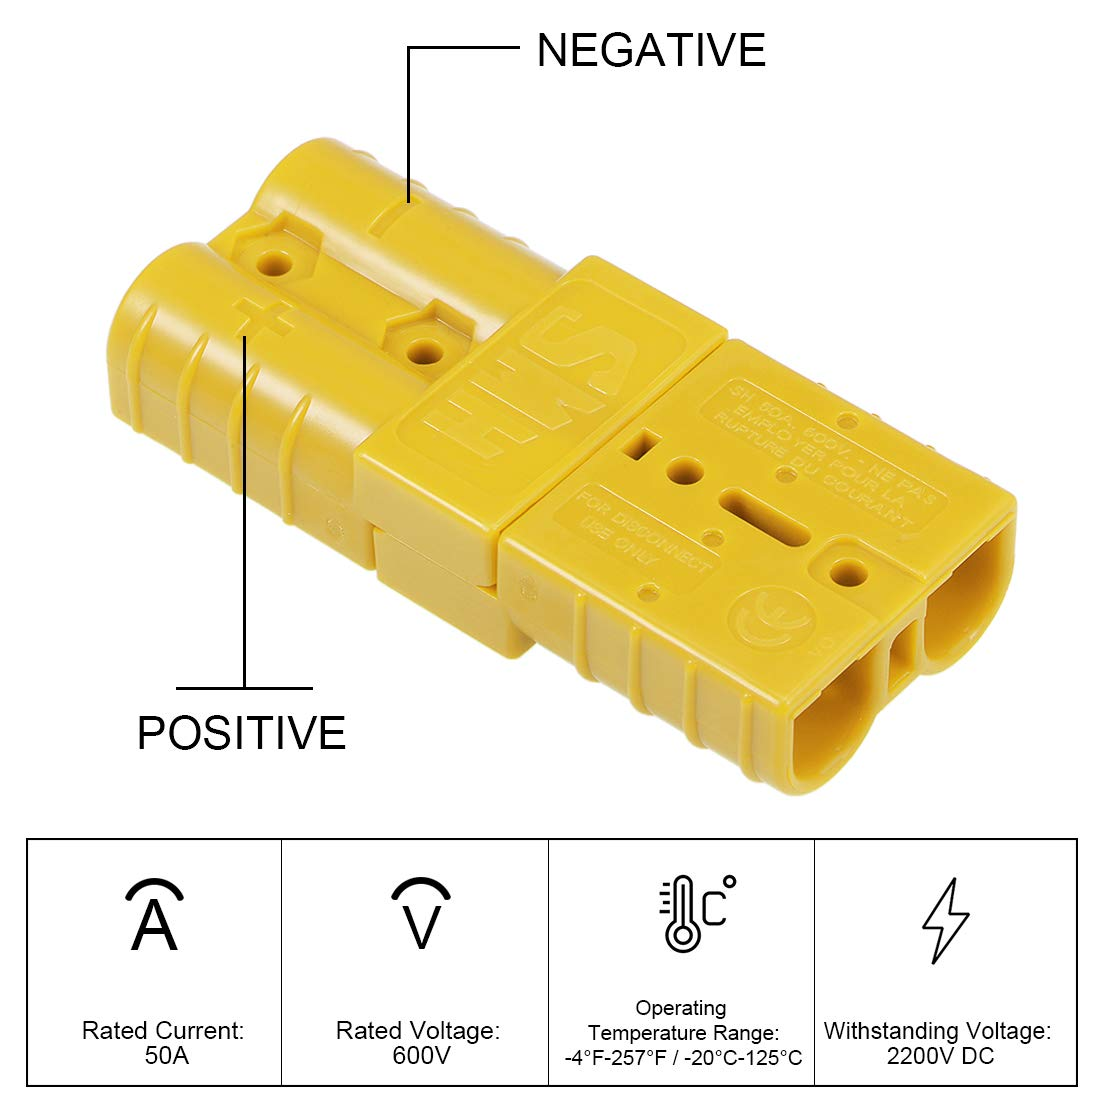 uxcell 6 Gauge Battery Quick Connect Disconnect Kit 50A Wire Harness Connector for Winch Auto Car Trailer Driver Yellow 2pcs